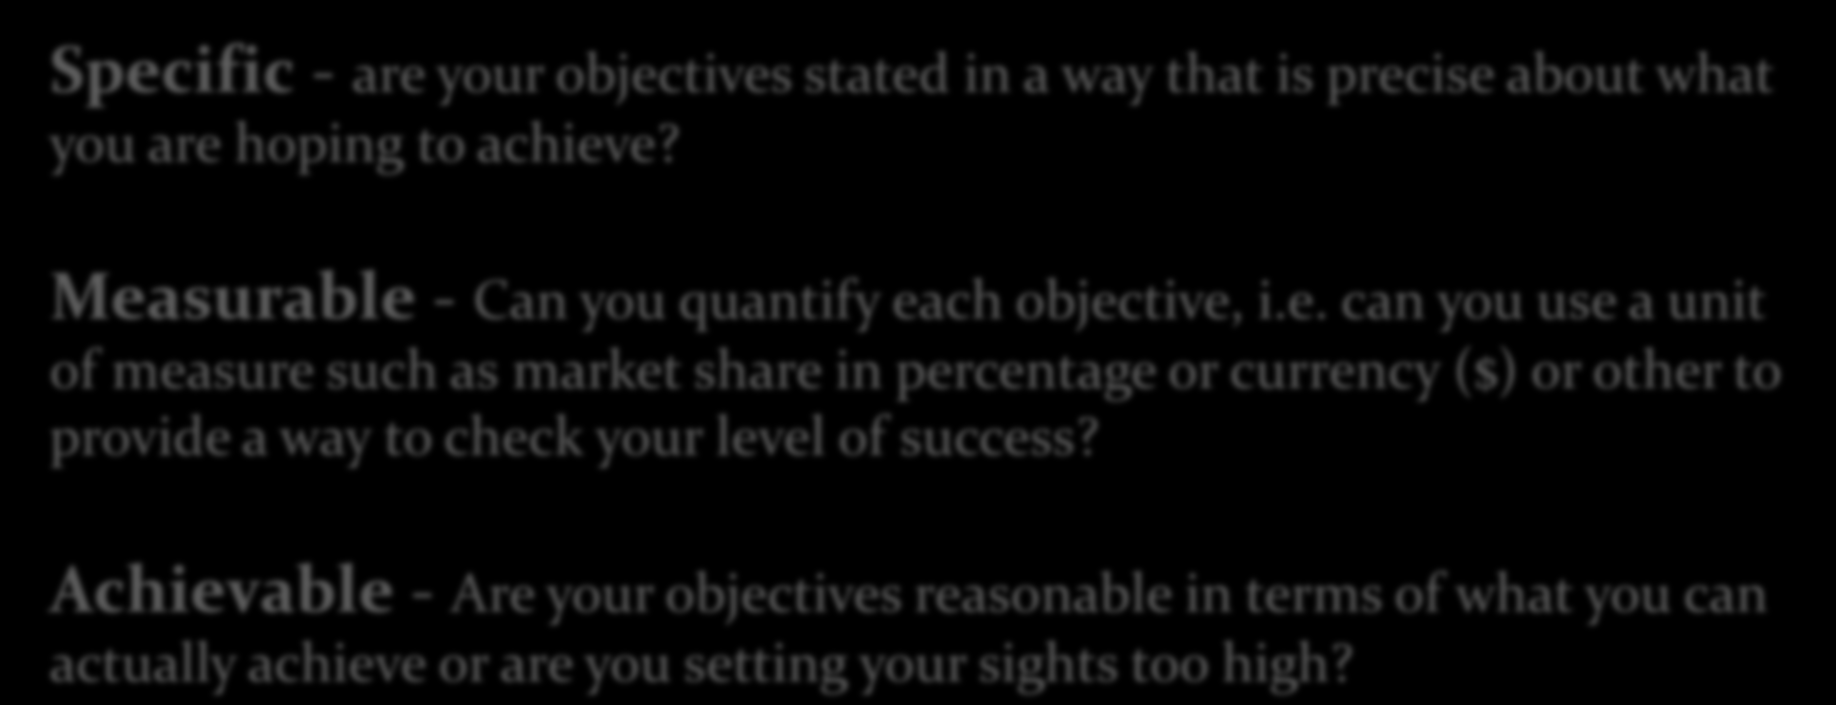 Step 3: Objectives SMART Approach = Setting specific, measurable, achievable, realistic and time specific objectives Specific - are your objectives stated in a way that is precise about what you are